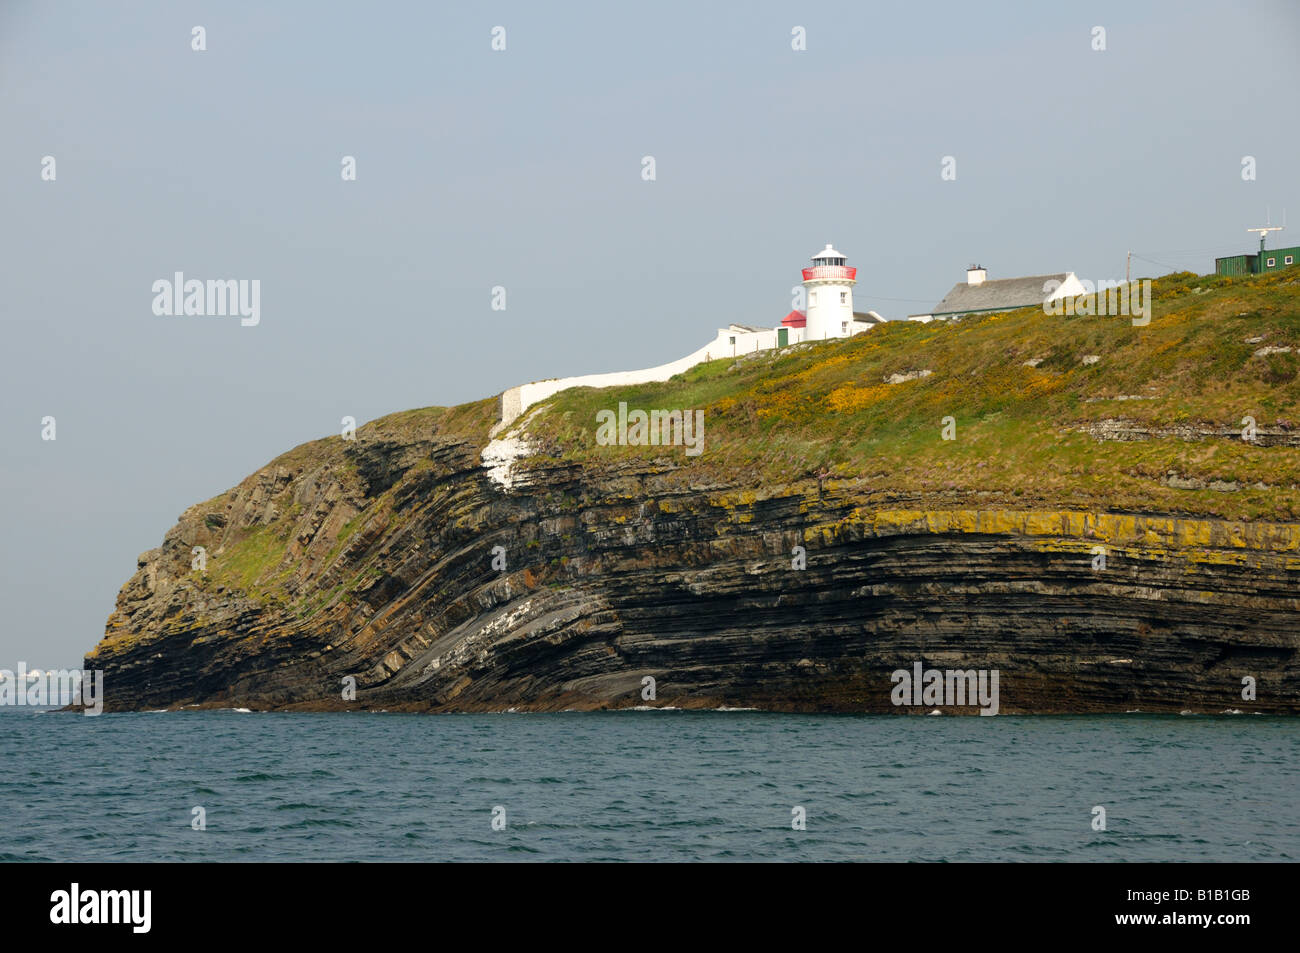 A lighthouse stands on the rock cliff of Irish coast. - Stock Image